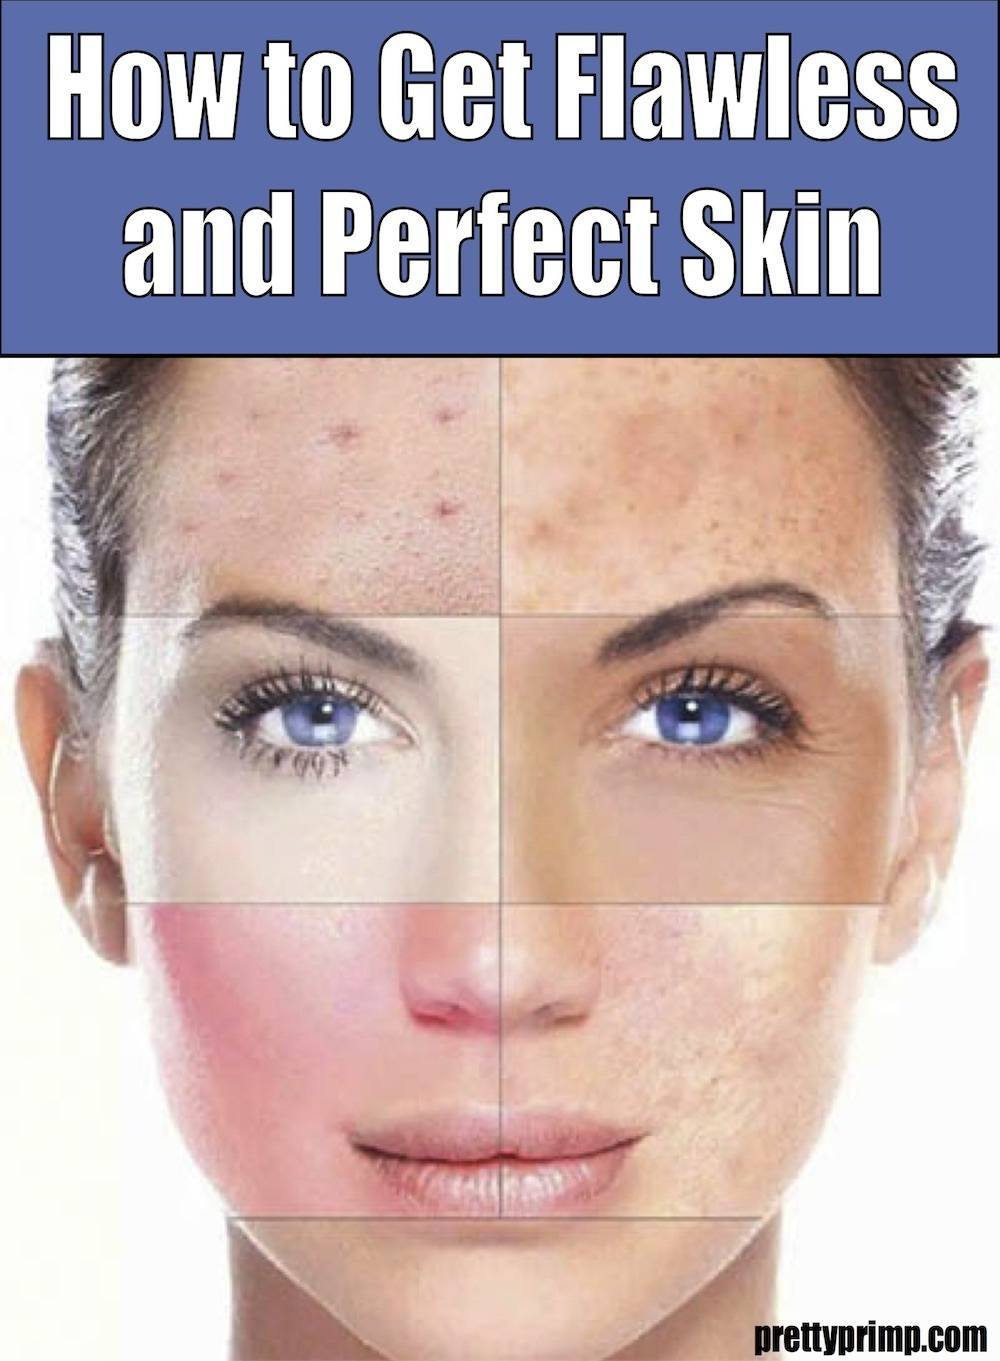 Watch How to Get Nice Skin video